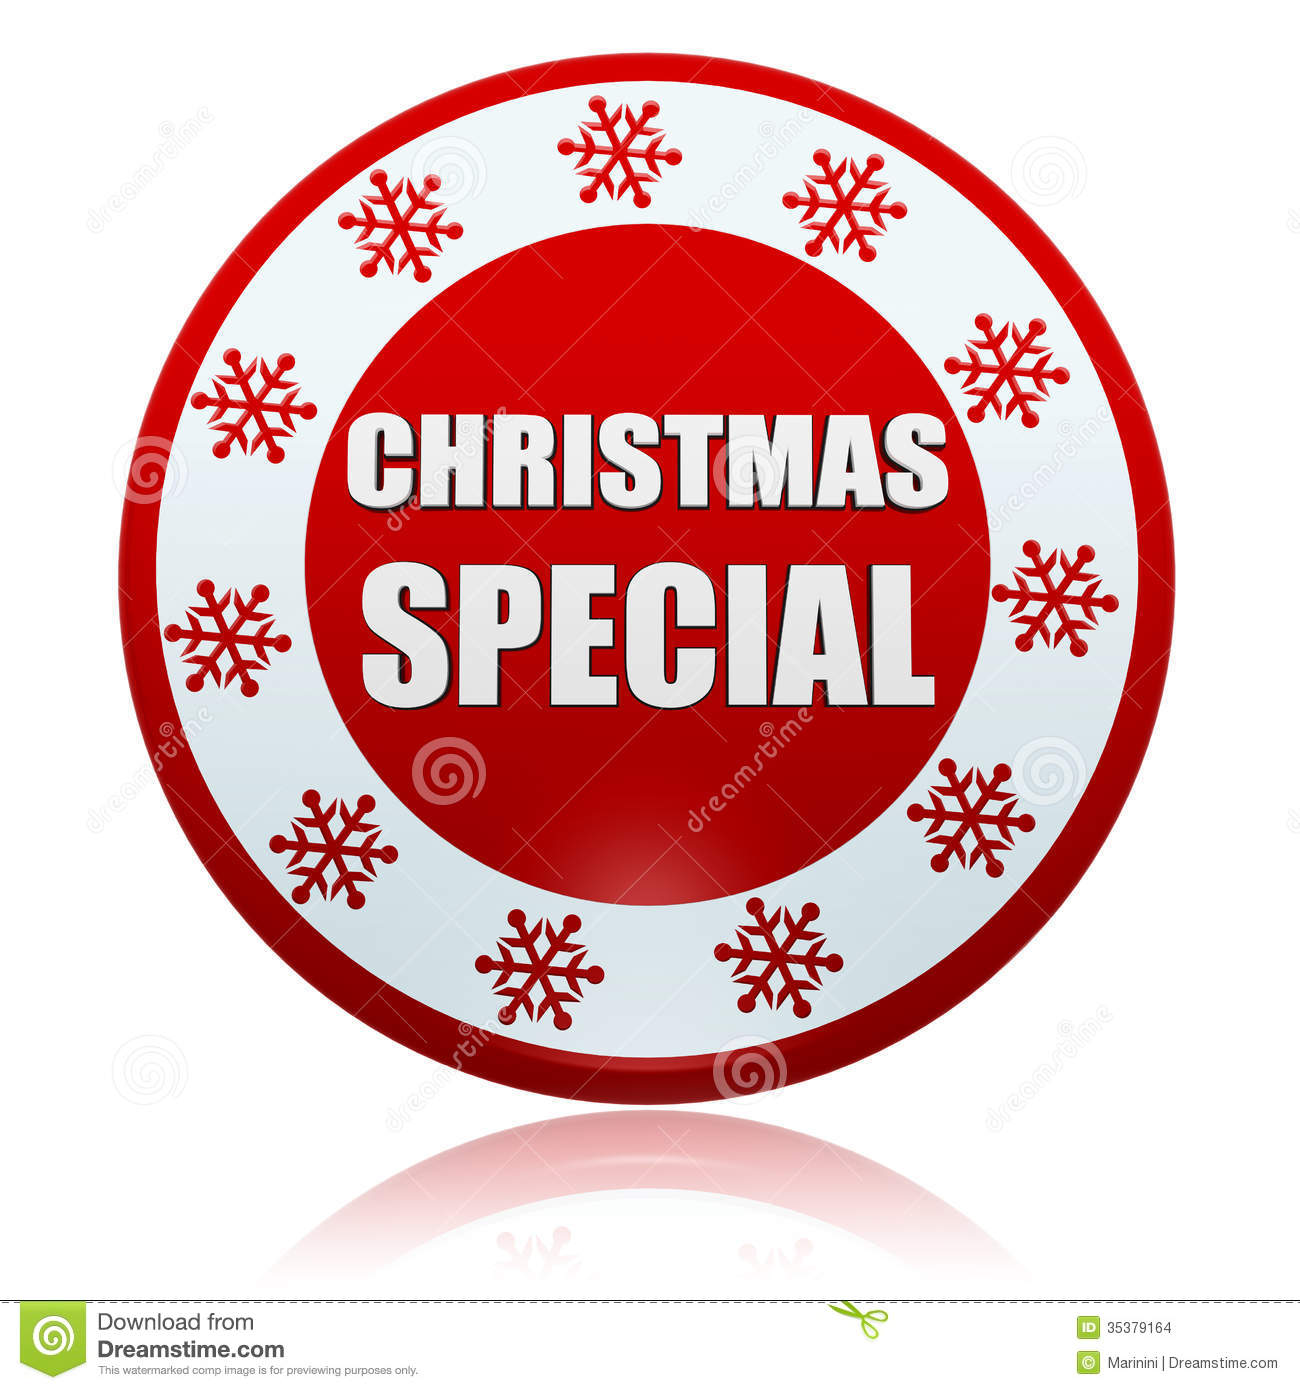 christmas special red circle banner with snowflakes symbol - Christmas Special